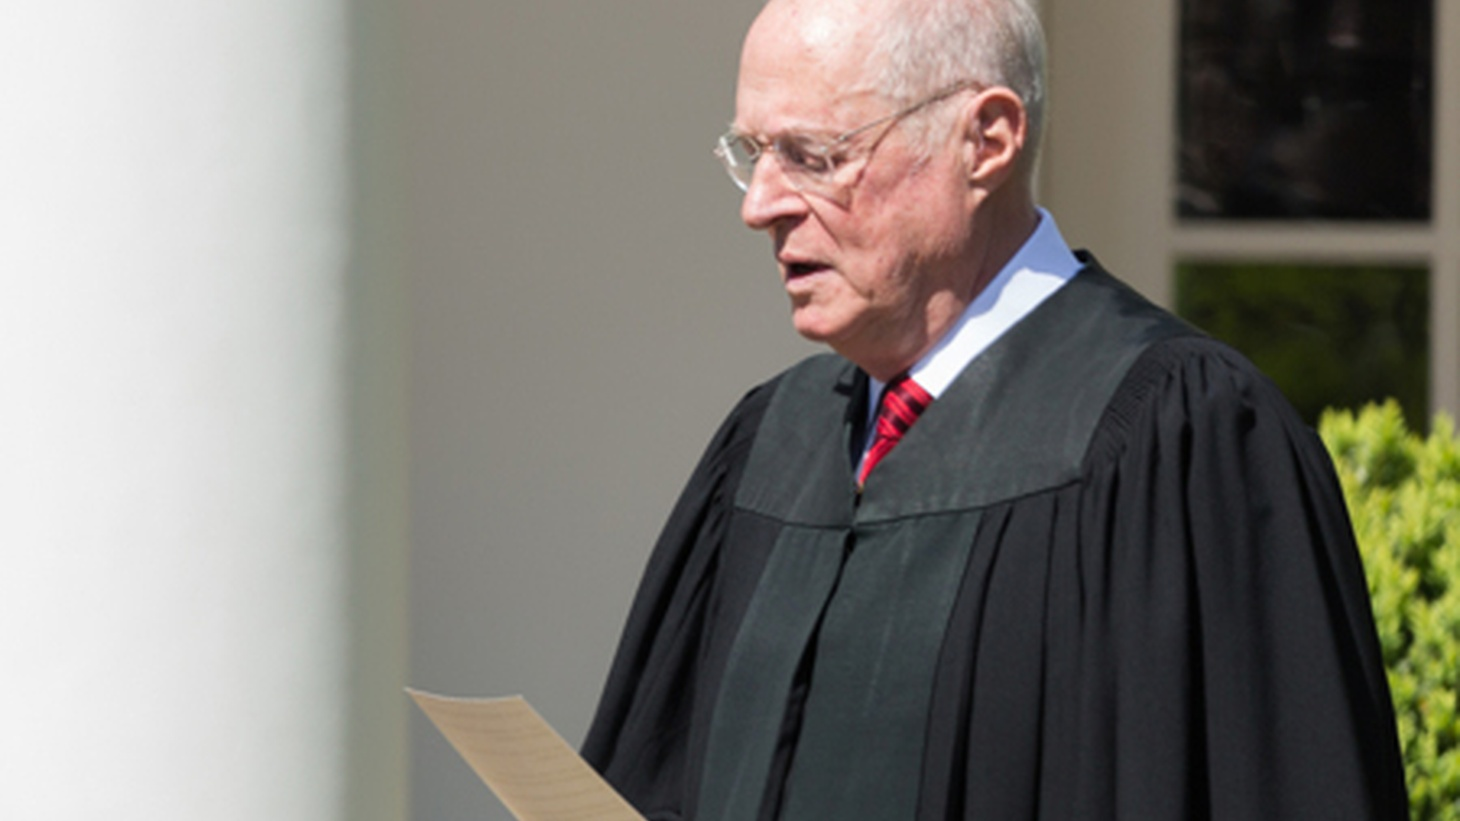 The Supreme Court is about to get more conservative. Justice Anthony Kennedy is retiring at the end of July. Although nominated by Ronald Reagan, he was the court's swing vote. Trump's next nominee will be firmly on the right.